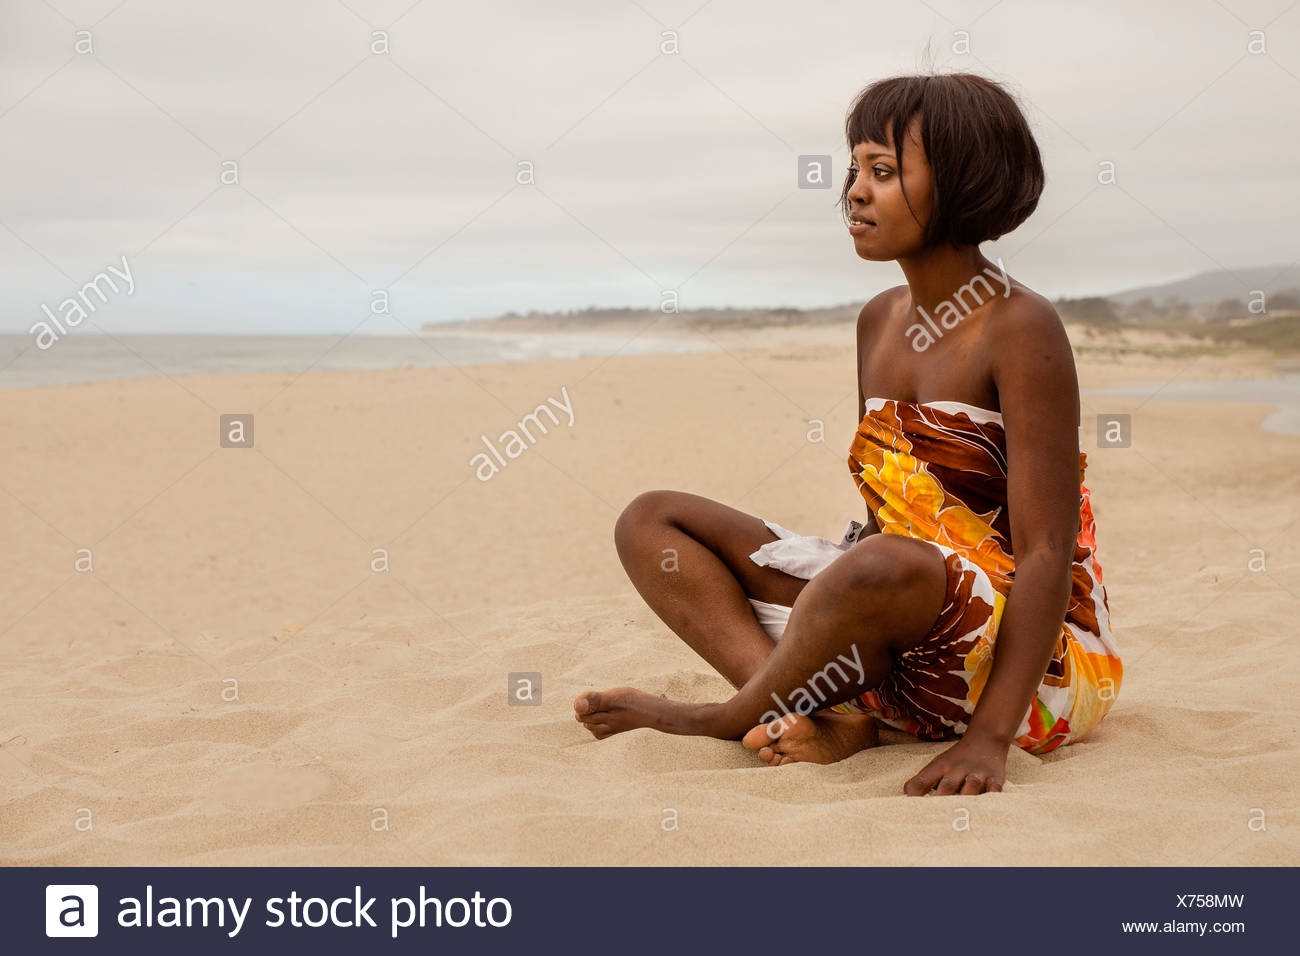 Couple at the Beach - Stock Image